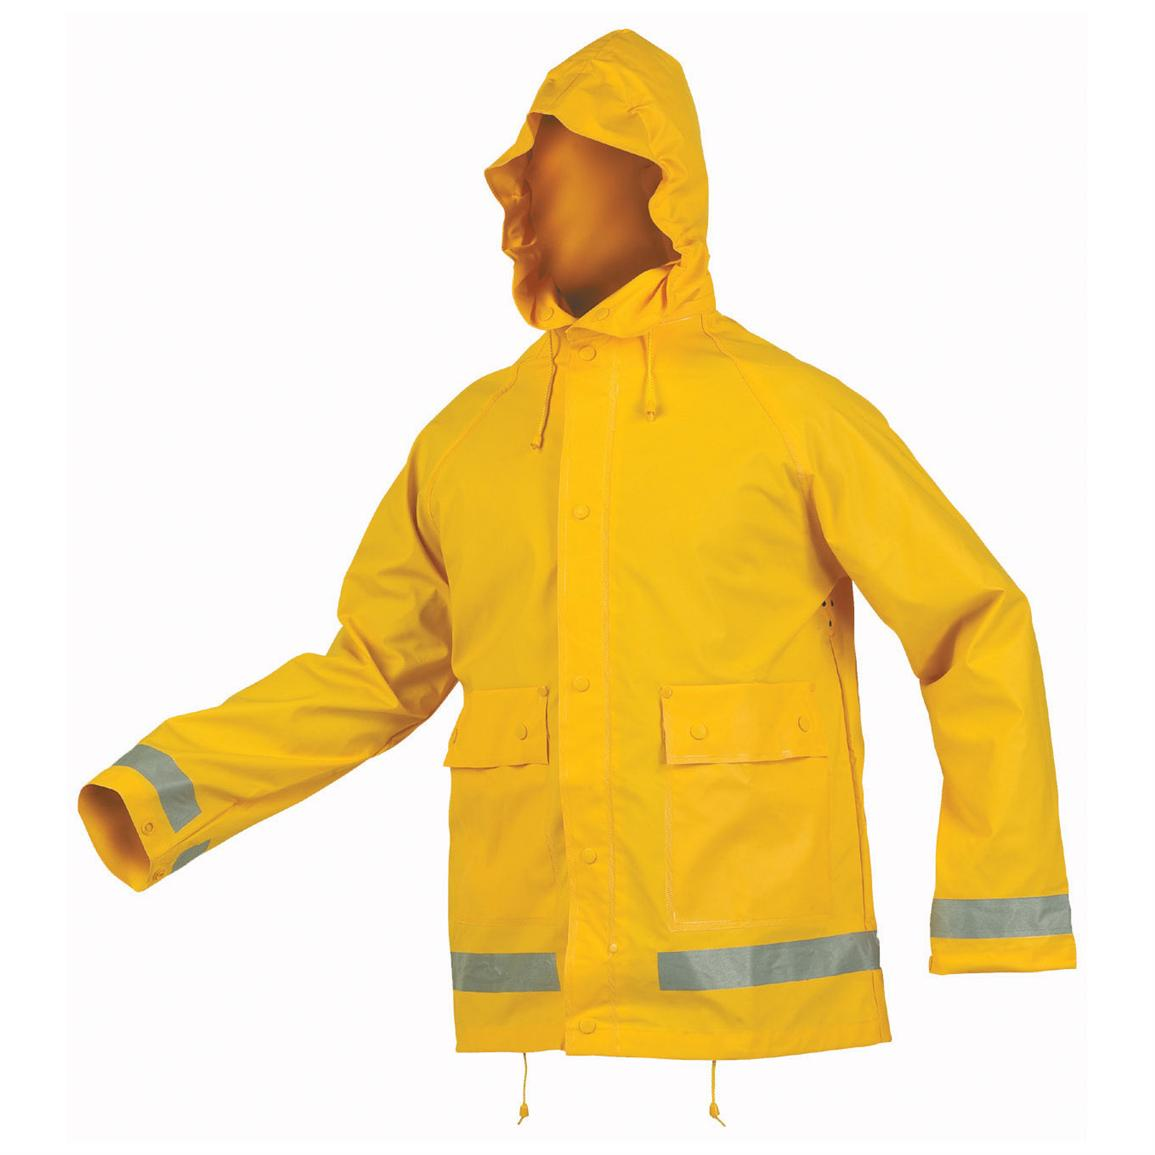 Storm Rain Jacket with Reflective Tape, Yellow